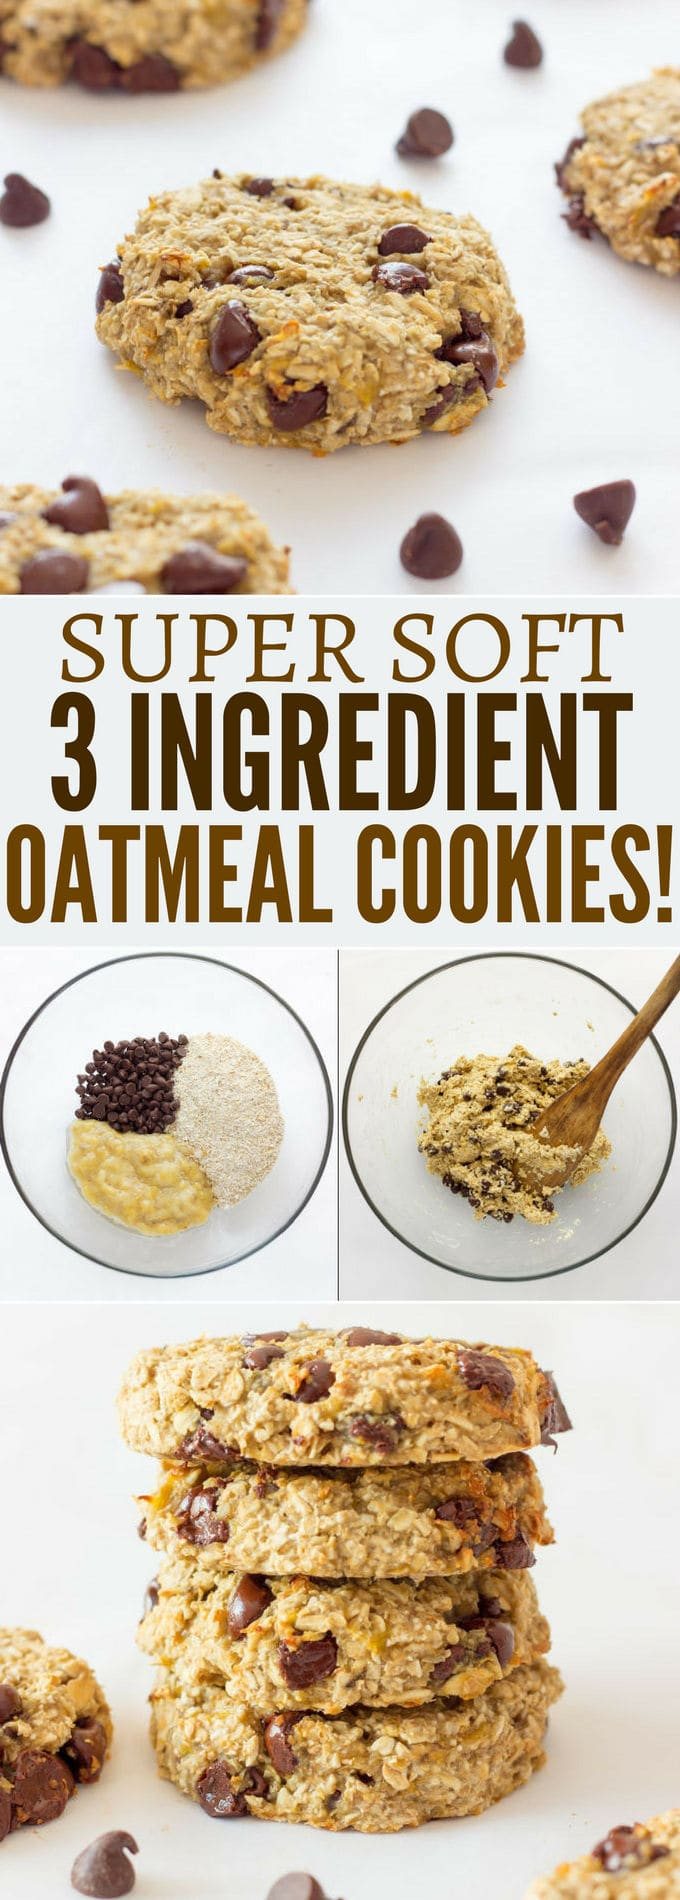 Ready under 20 minutes, these healthy, chewy and soft banana & oatmeal cookies are made with only 3 simple ingredients. They are a very simple and light version of the traditional oatmeal cookie with added dark chocolate chips. Flourless, eggless, low-calorie and low-fat these delicious cookies are made without butter, brown sugar or baking soda. Most homemade traditional oatmeal cookie recipes require that the dough is chilled before cooking, well, no need to refrigerate the dough for that recipe as the preparation holds very well on its own. Paleo, vegan, gluten-free and dairy-free this recipe is friendly to most diets trending right now. Are you on a low cholesterol diet? Give these a shot! | onecleverchef.com